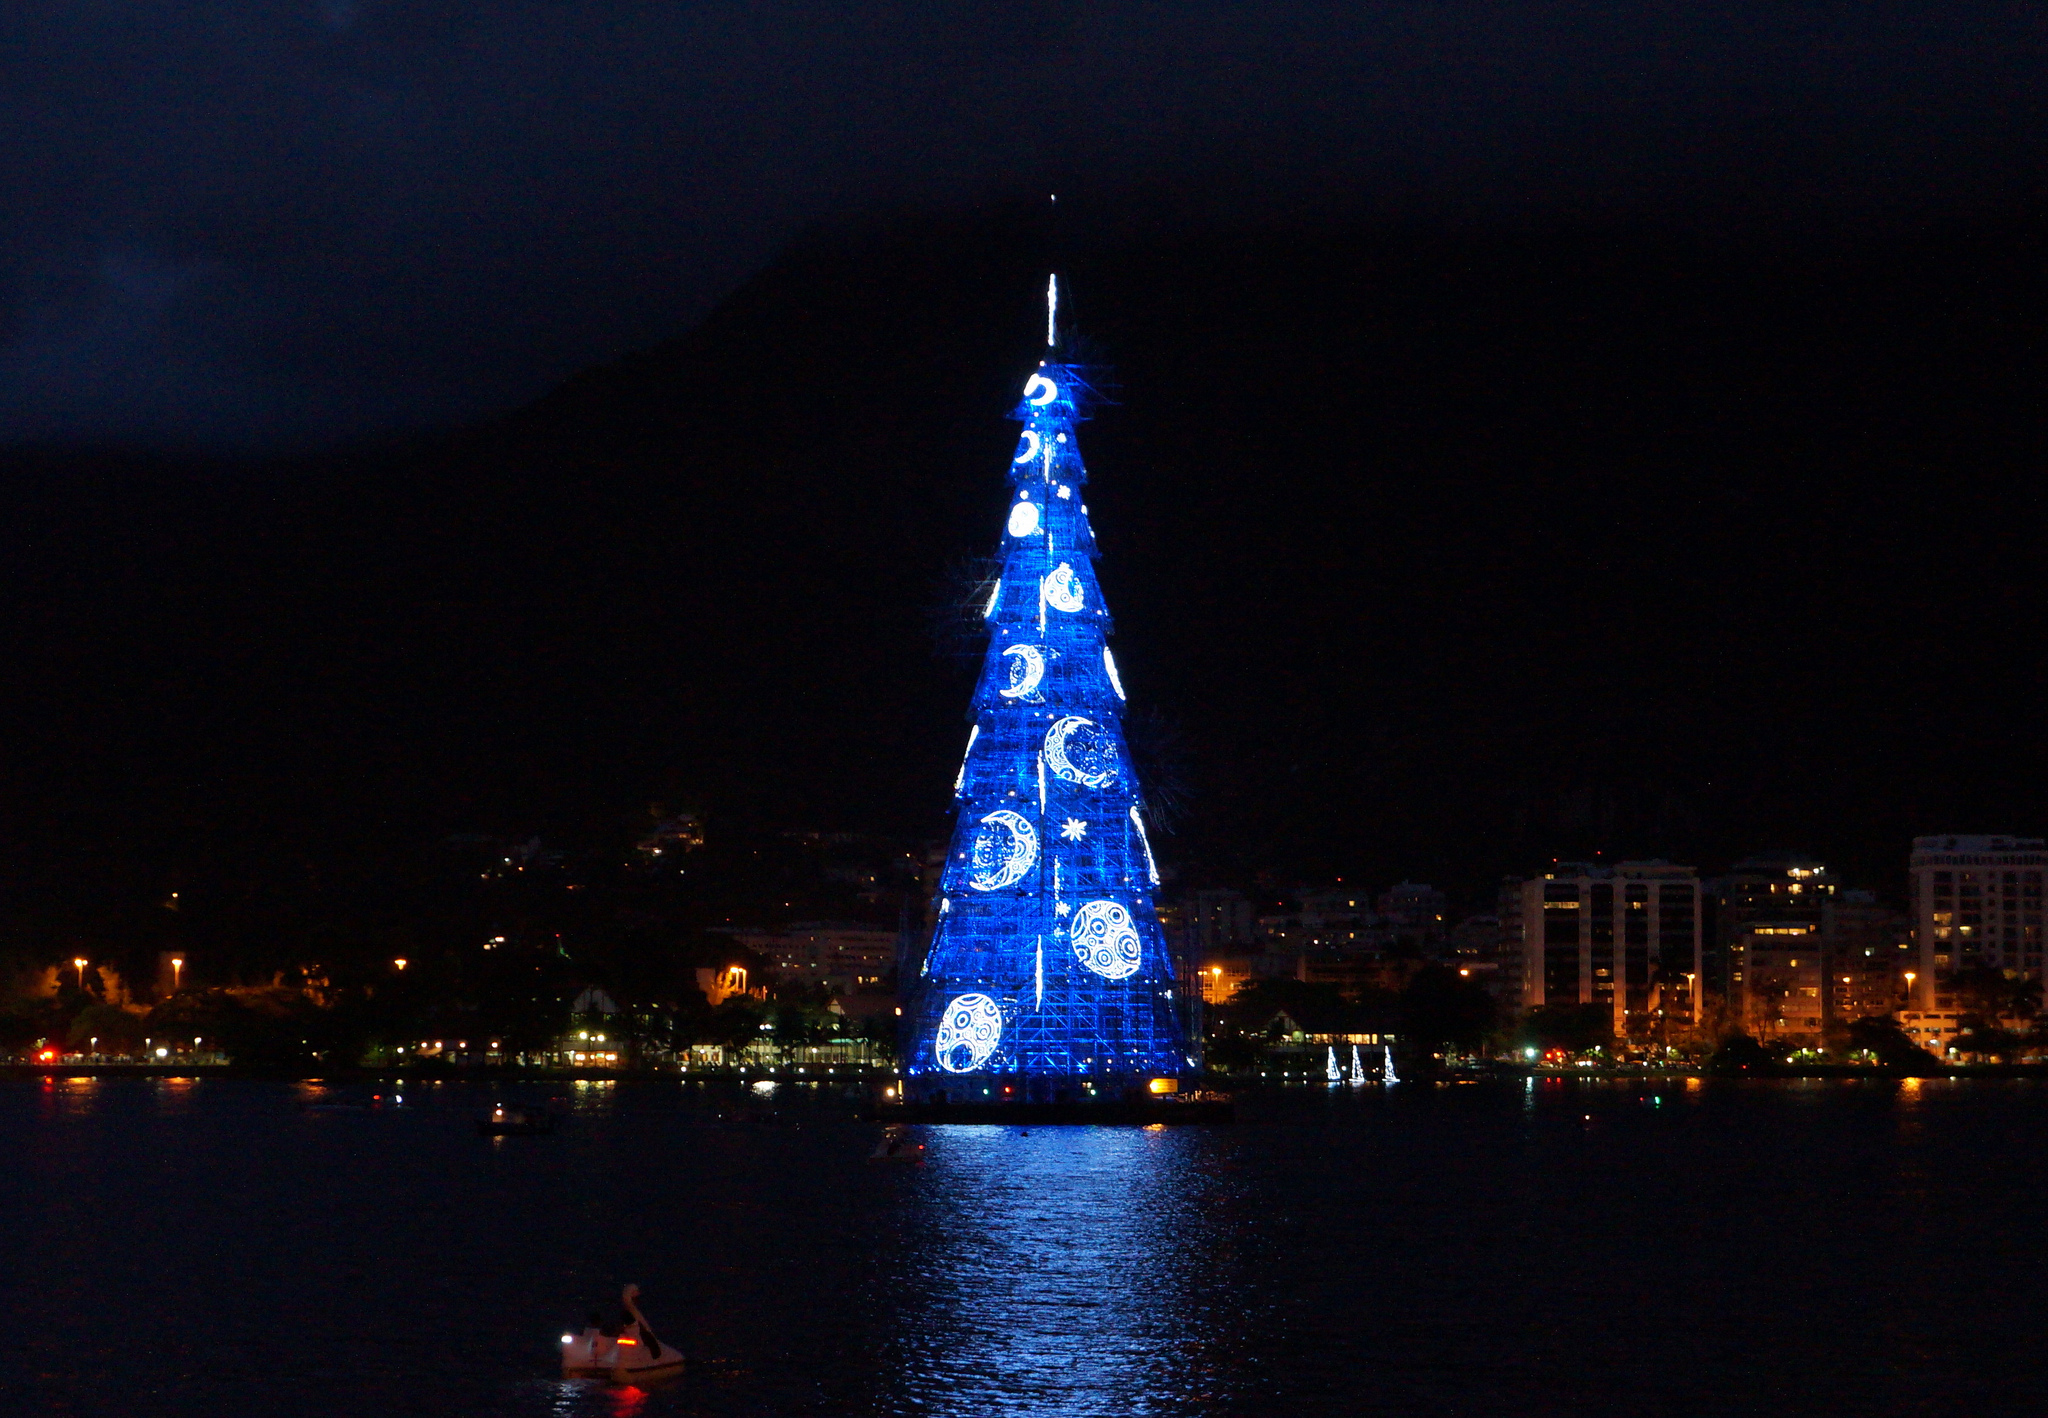 If You Thought That The Parisian Christmas Tree Was Impressive, Then  Clearly Rio De Janiero's